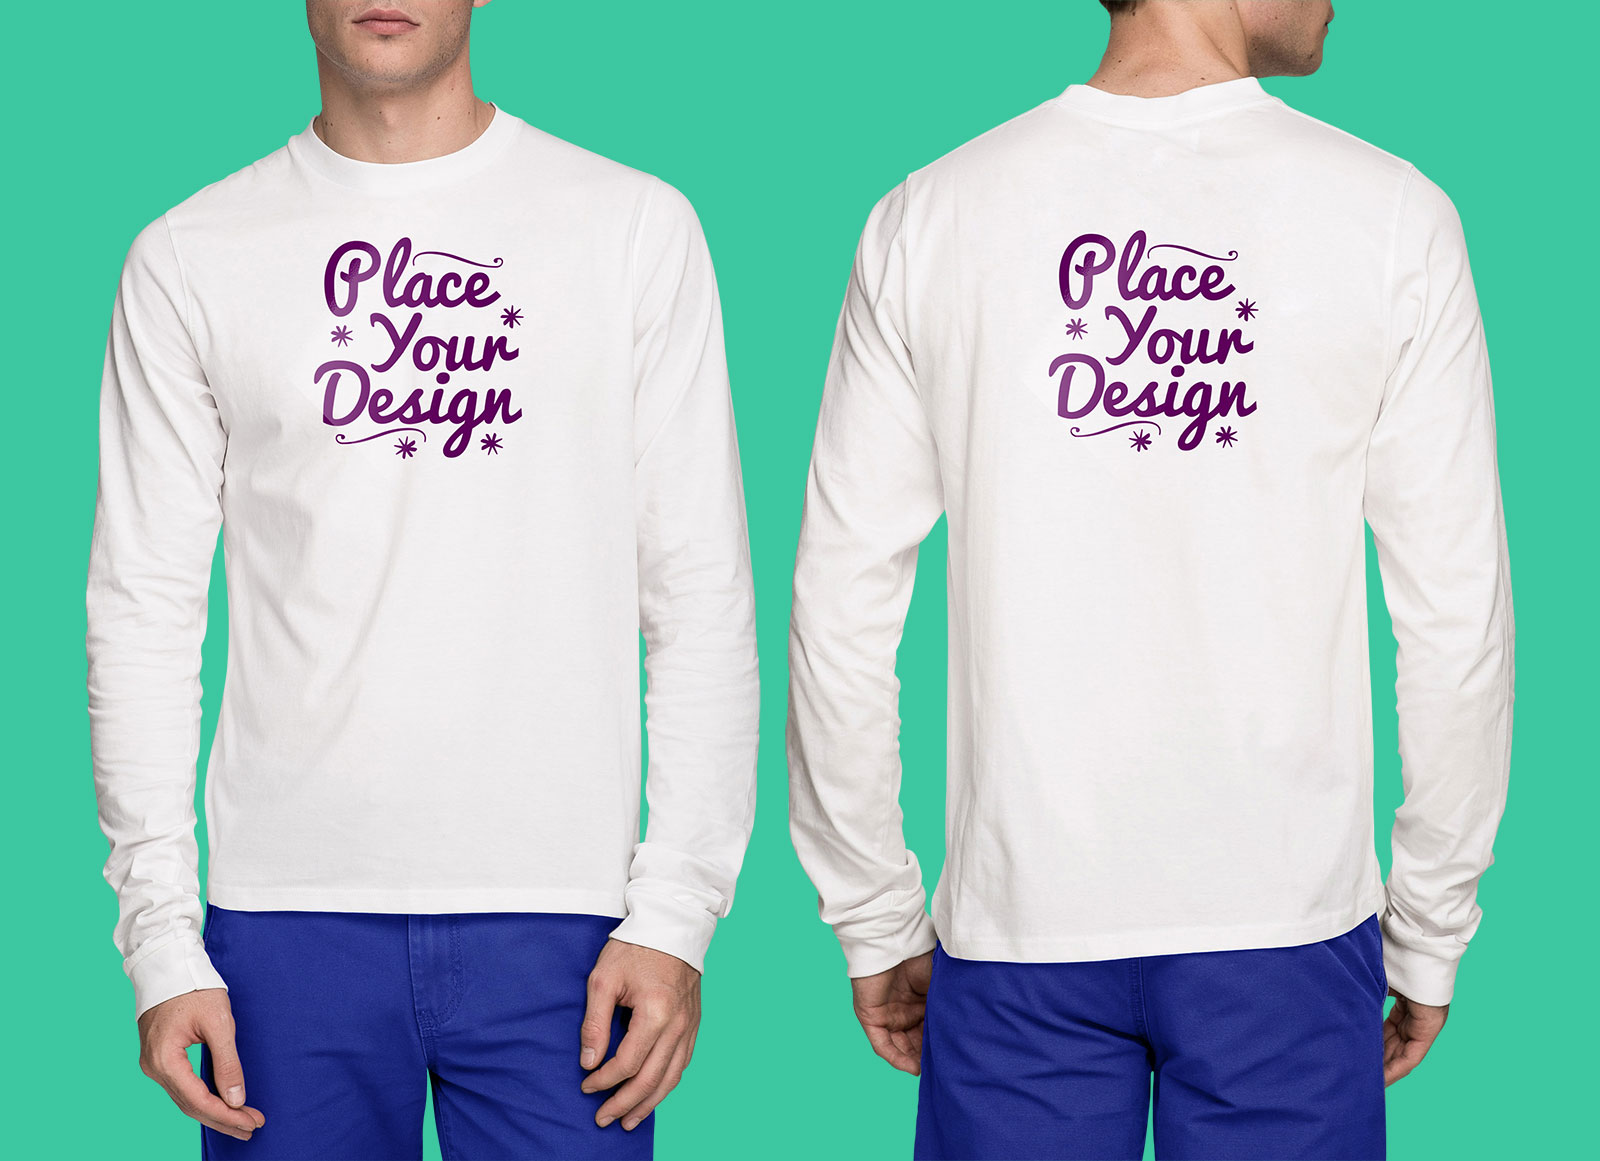 free front  u0026 back white long sleeves t